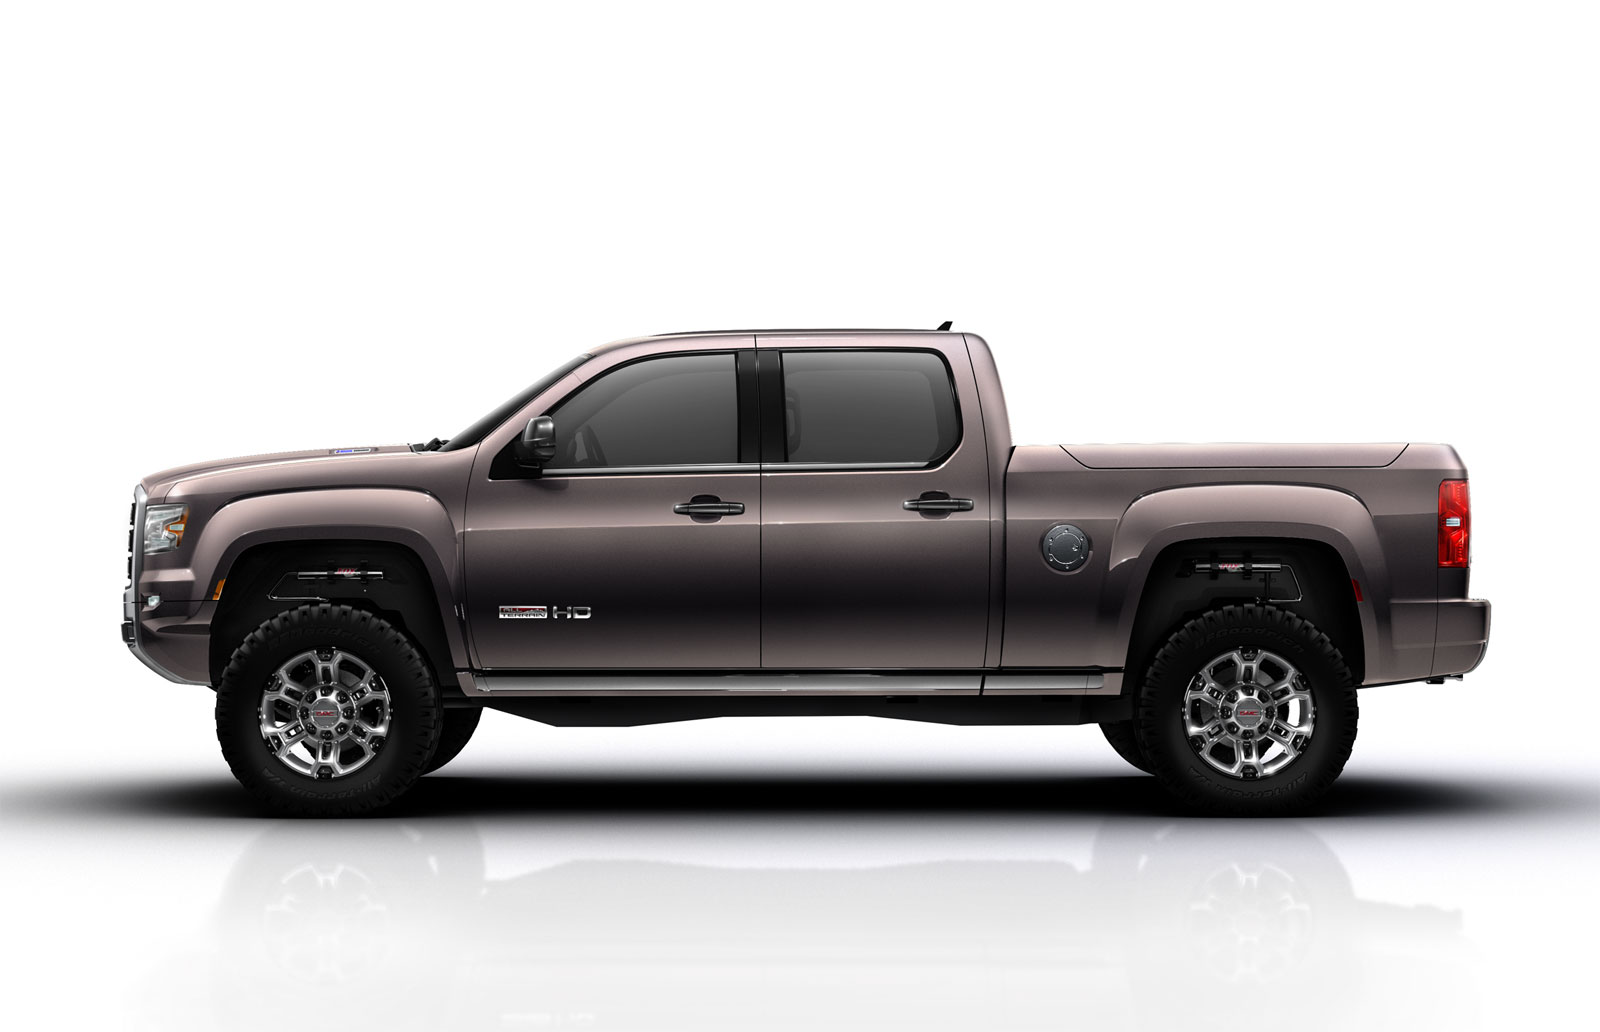 2018 GMC Sierra All Terrain HD photo - 1